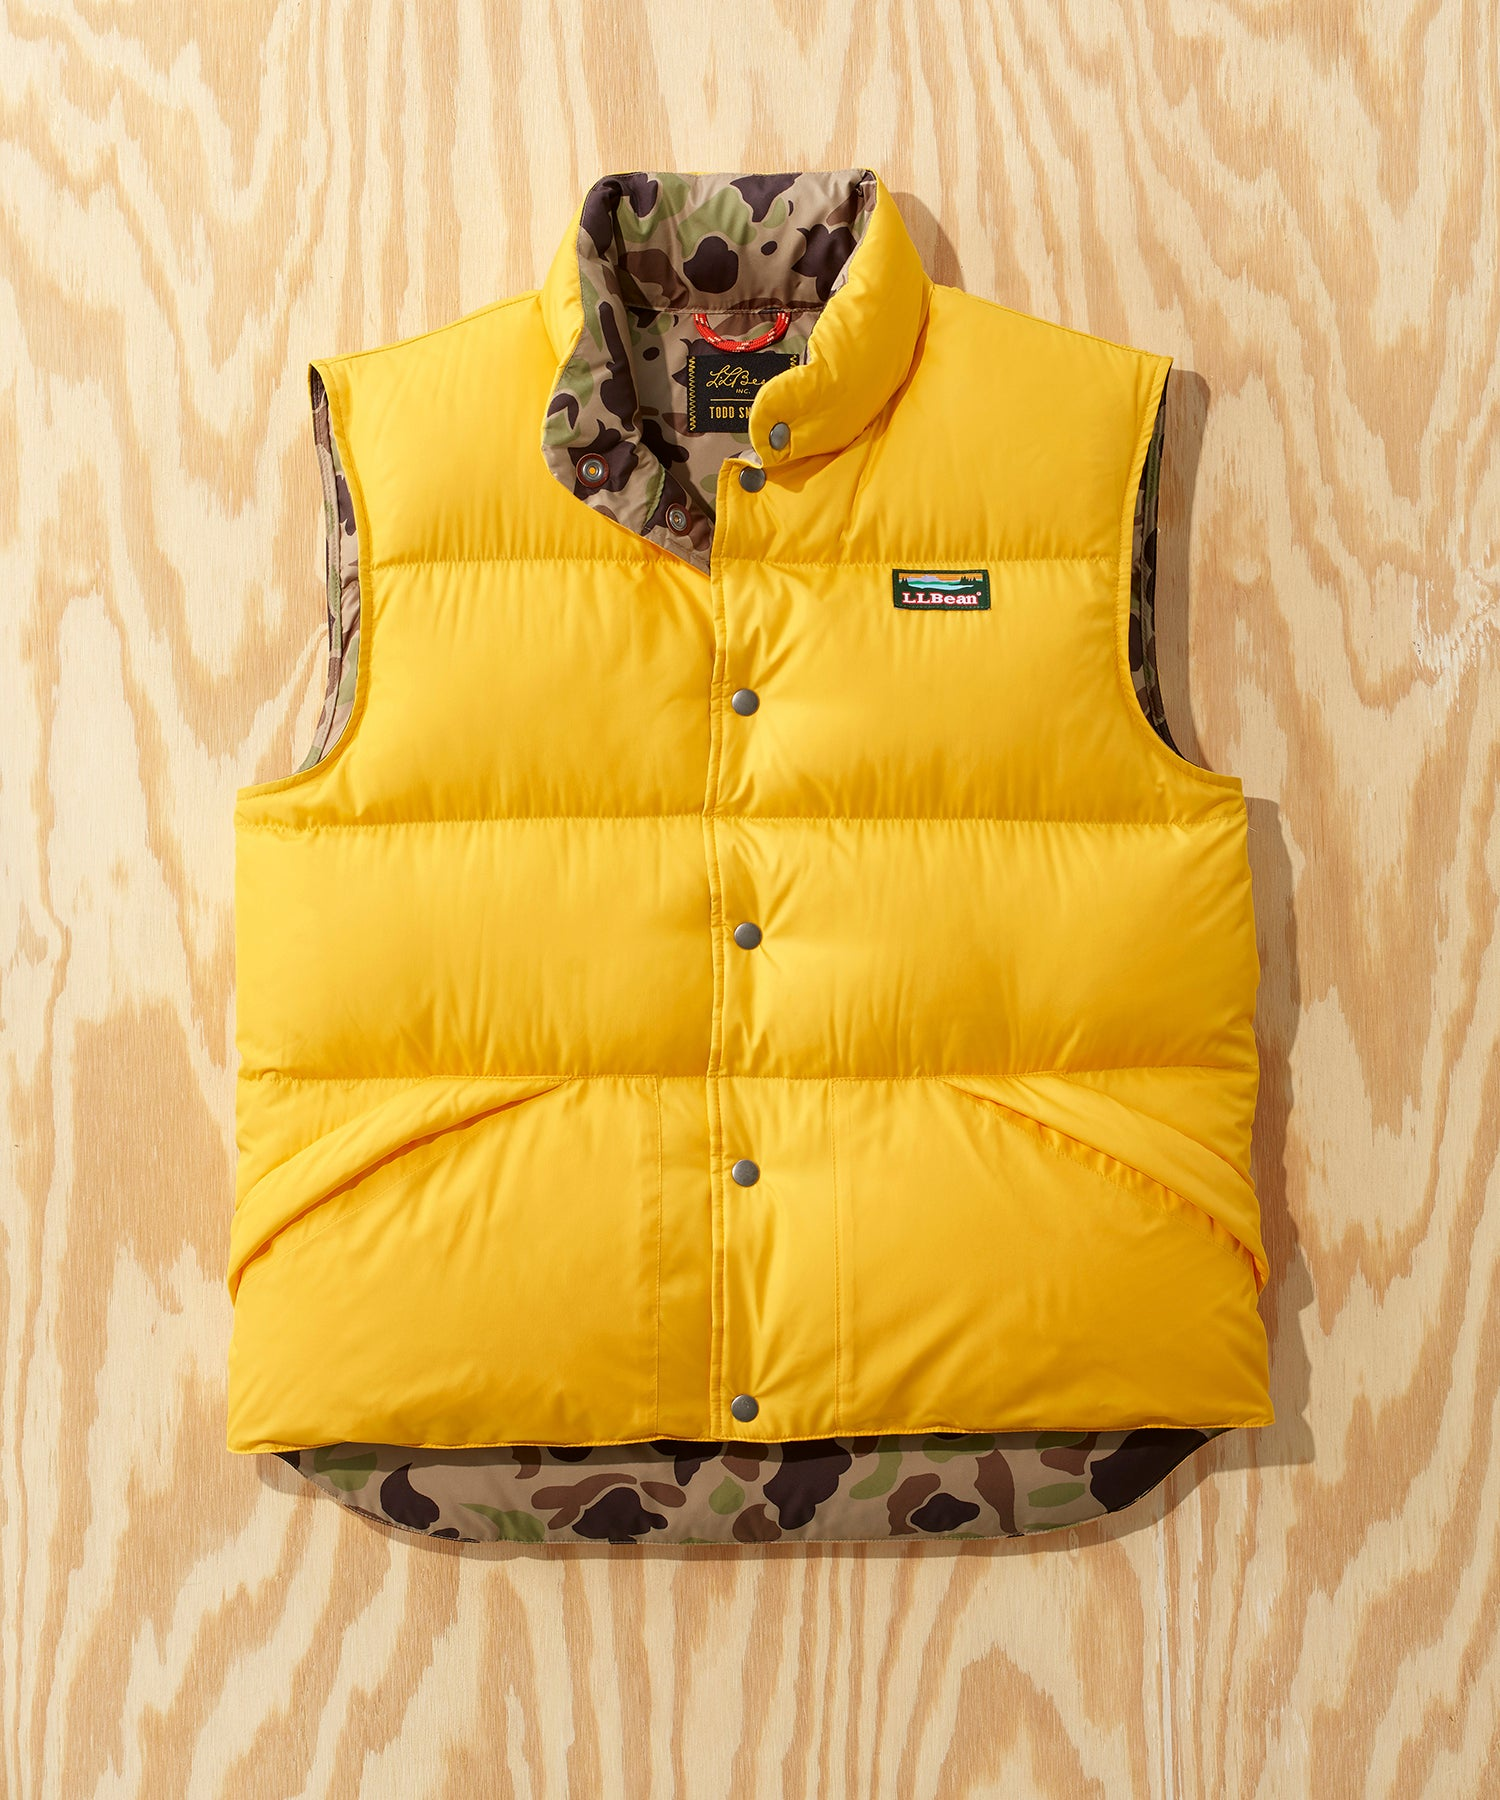 L.L.Bean x Todd Snyder Puffer Vest in Yellow